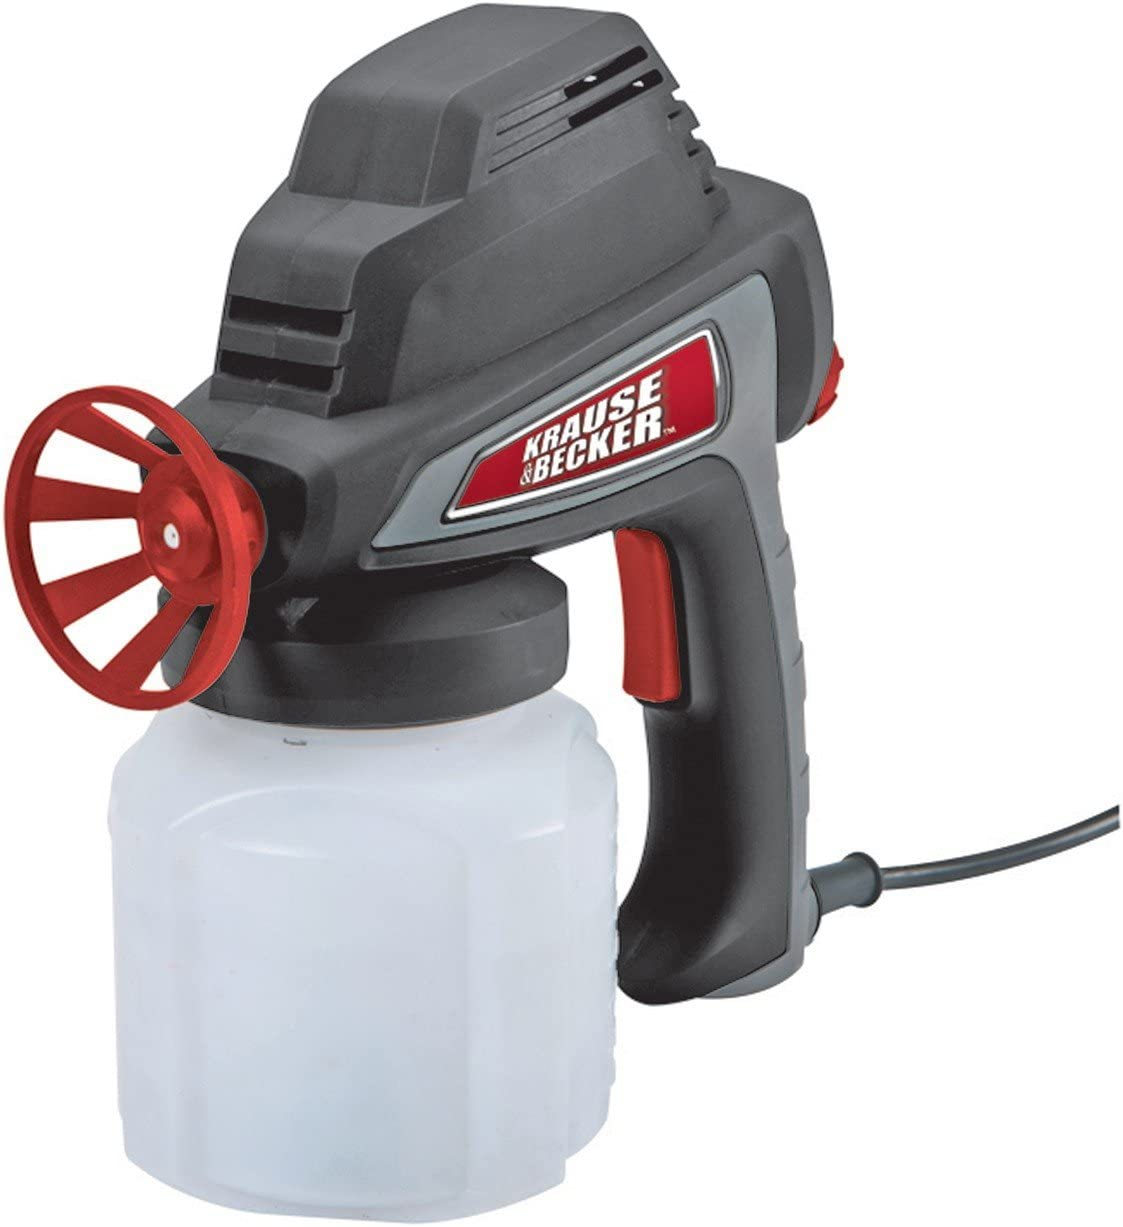 Krause & Becker 5 GPH Electric Paint Spray Gun with Durable 24 Oz. Polypropylene Paint Cup